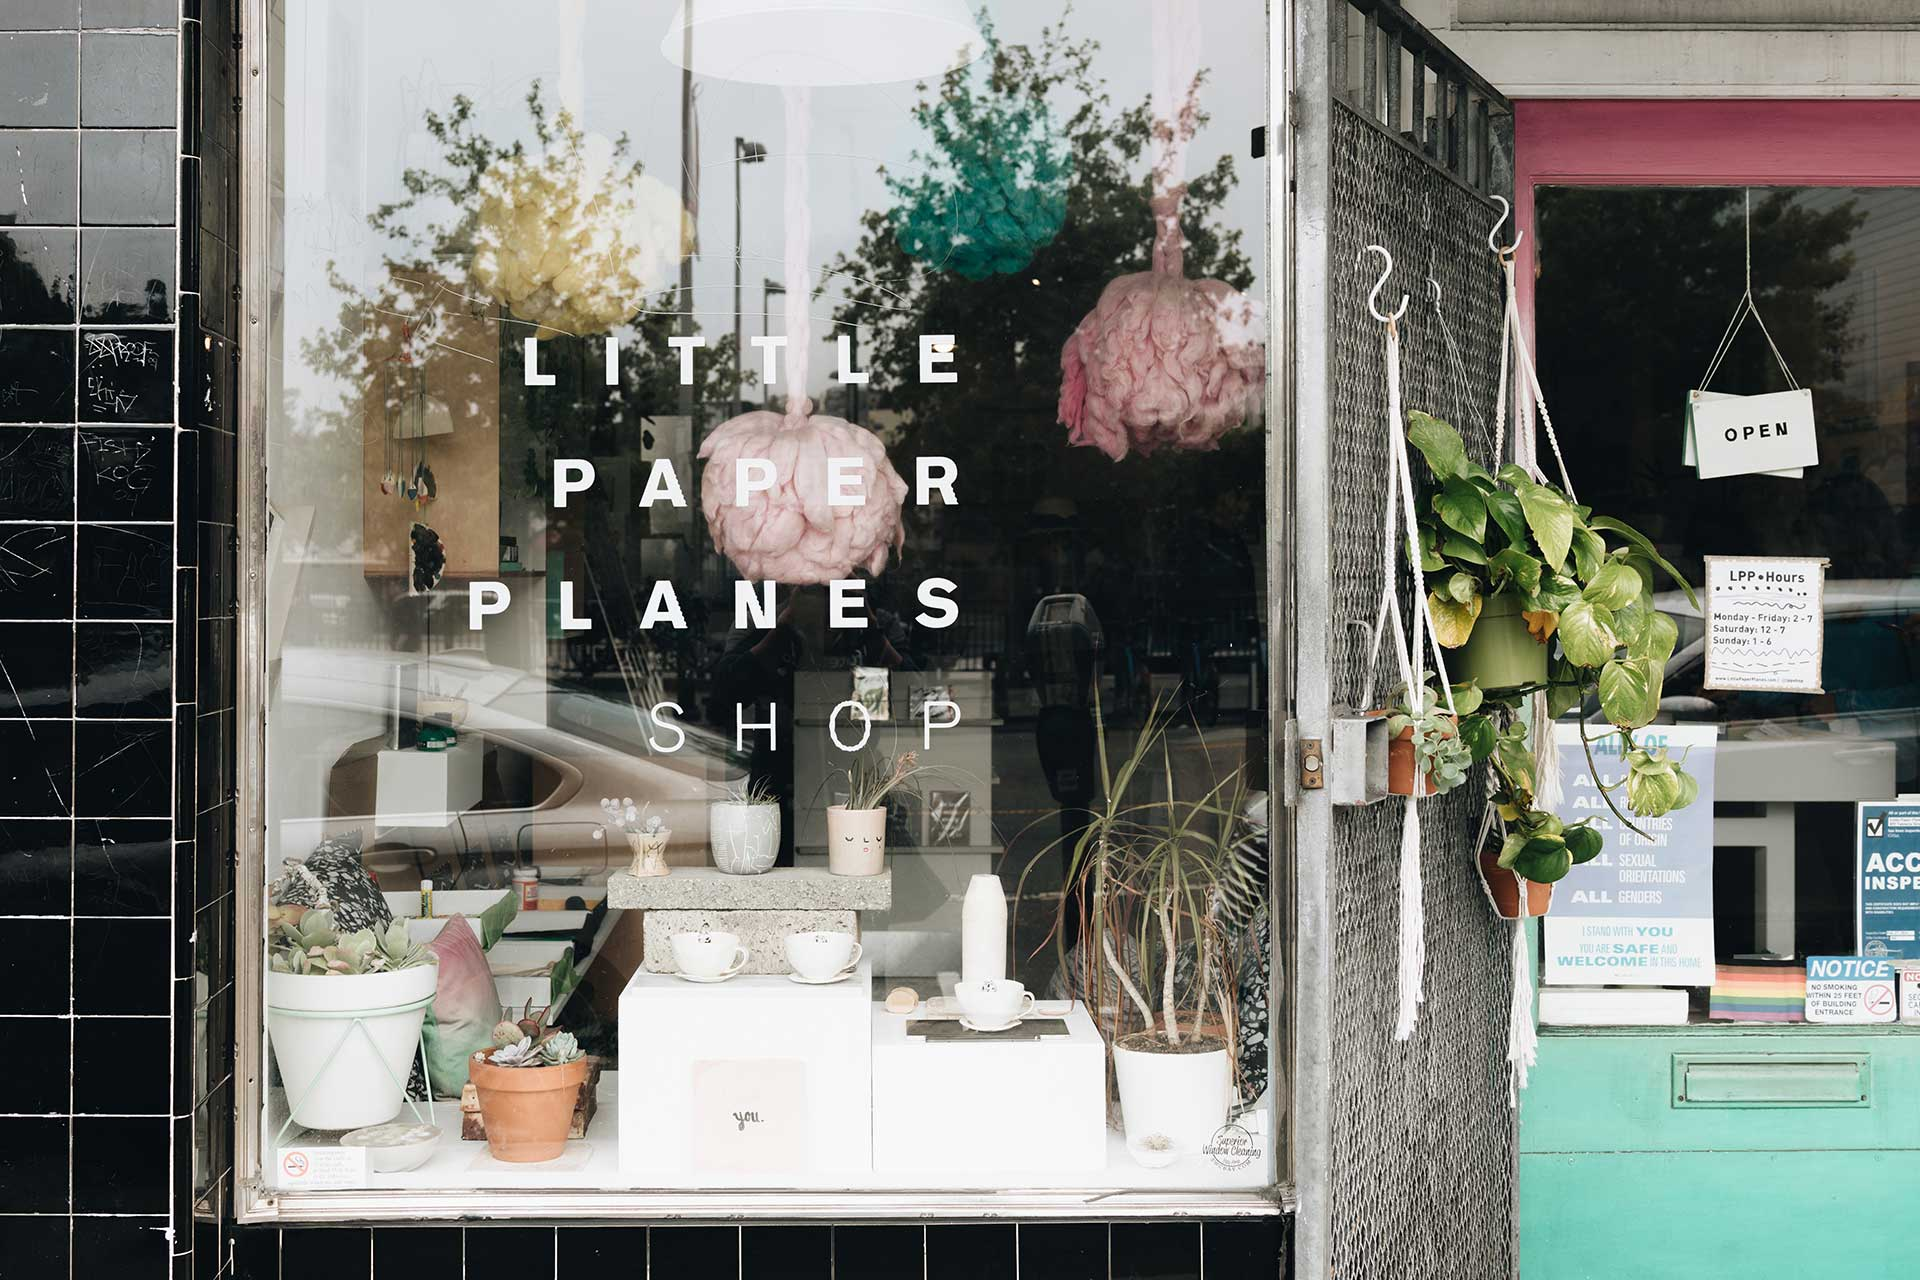 Little Paper Planes Shop in Mission District, San Francisco, California